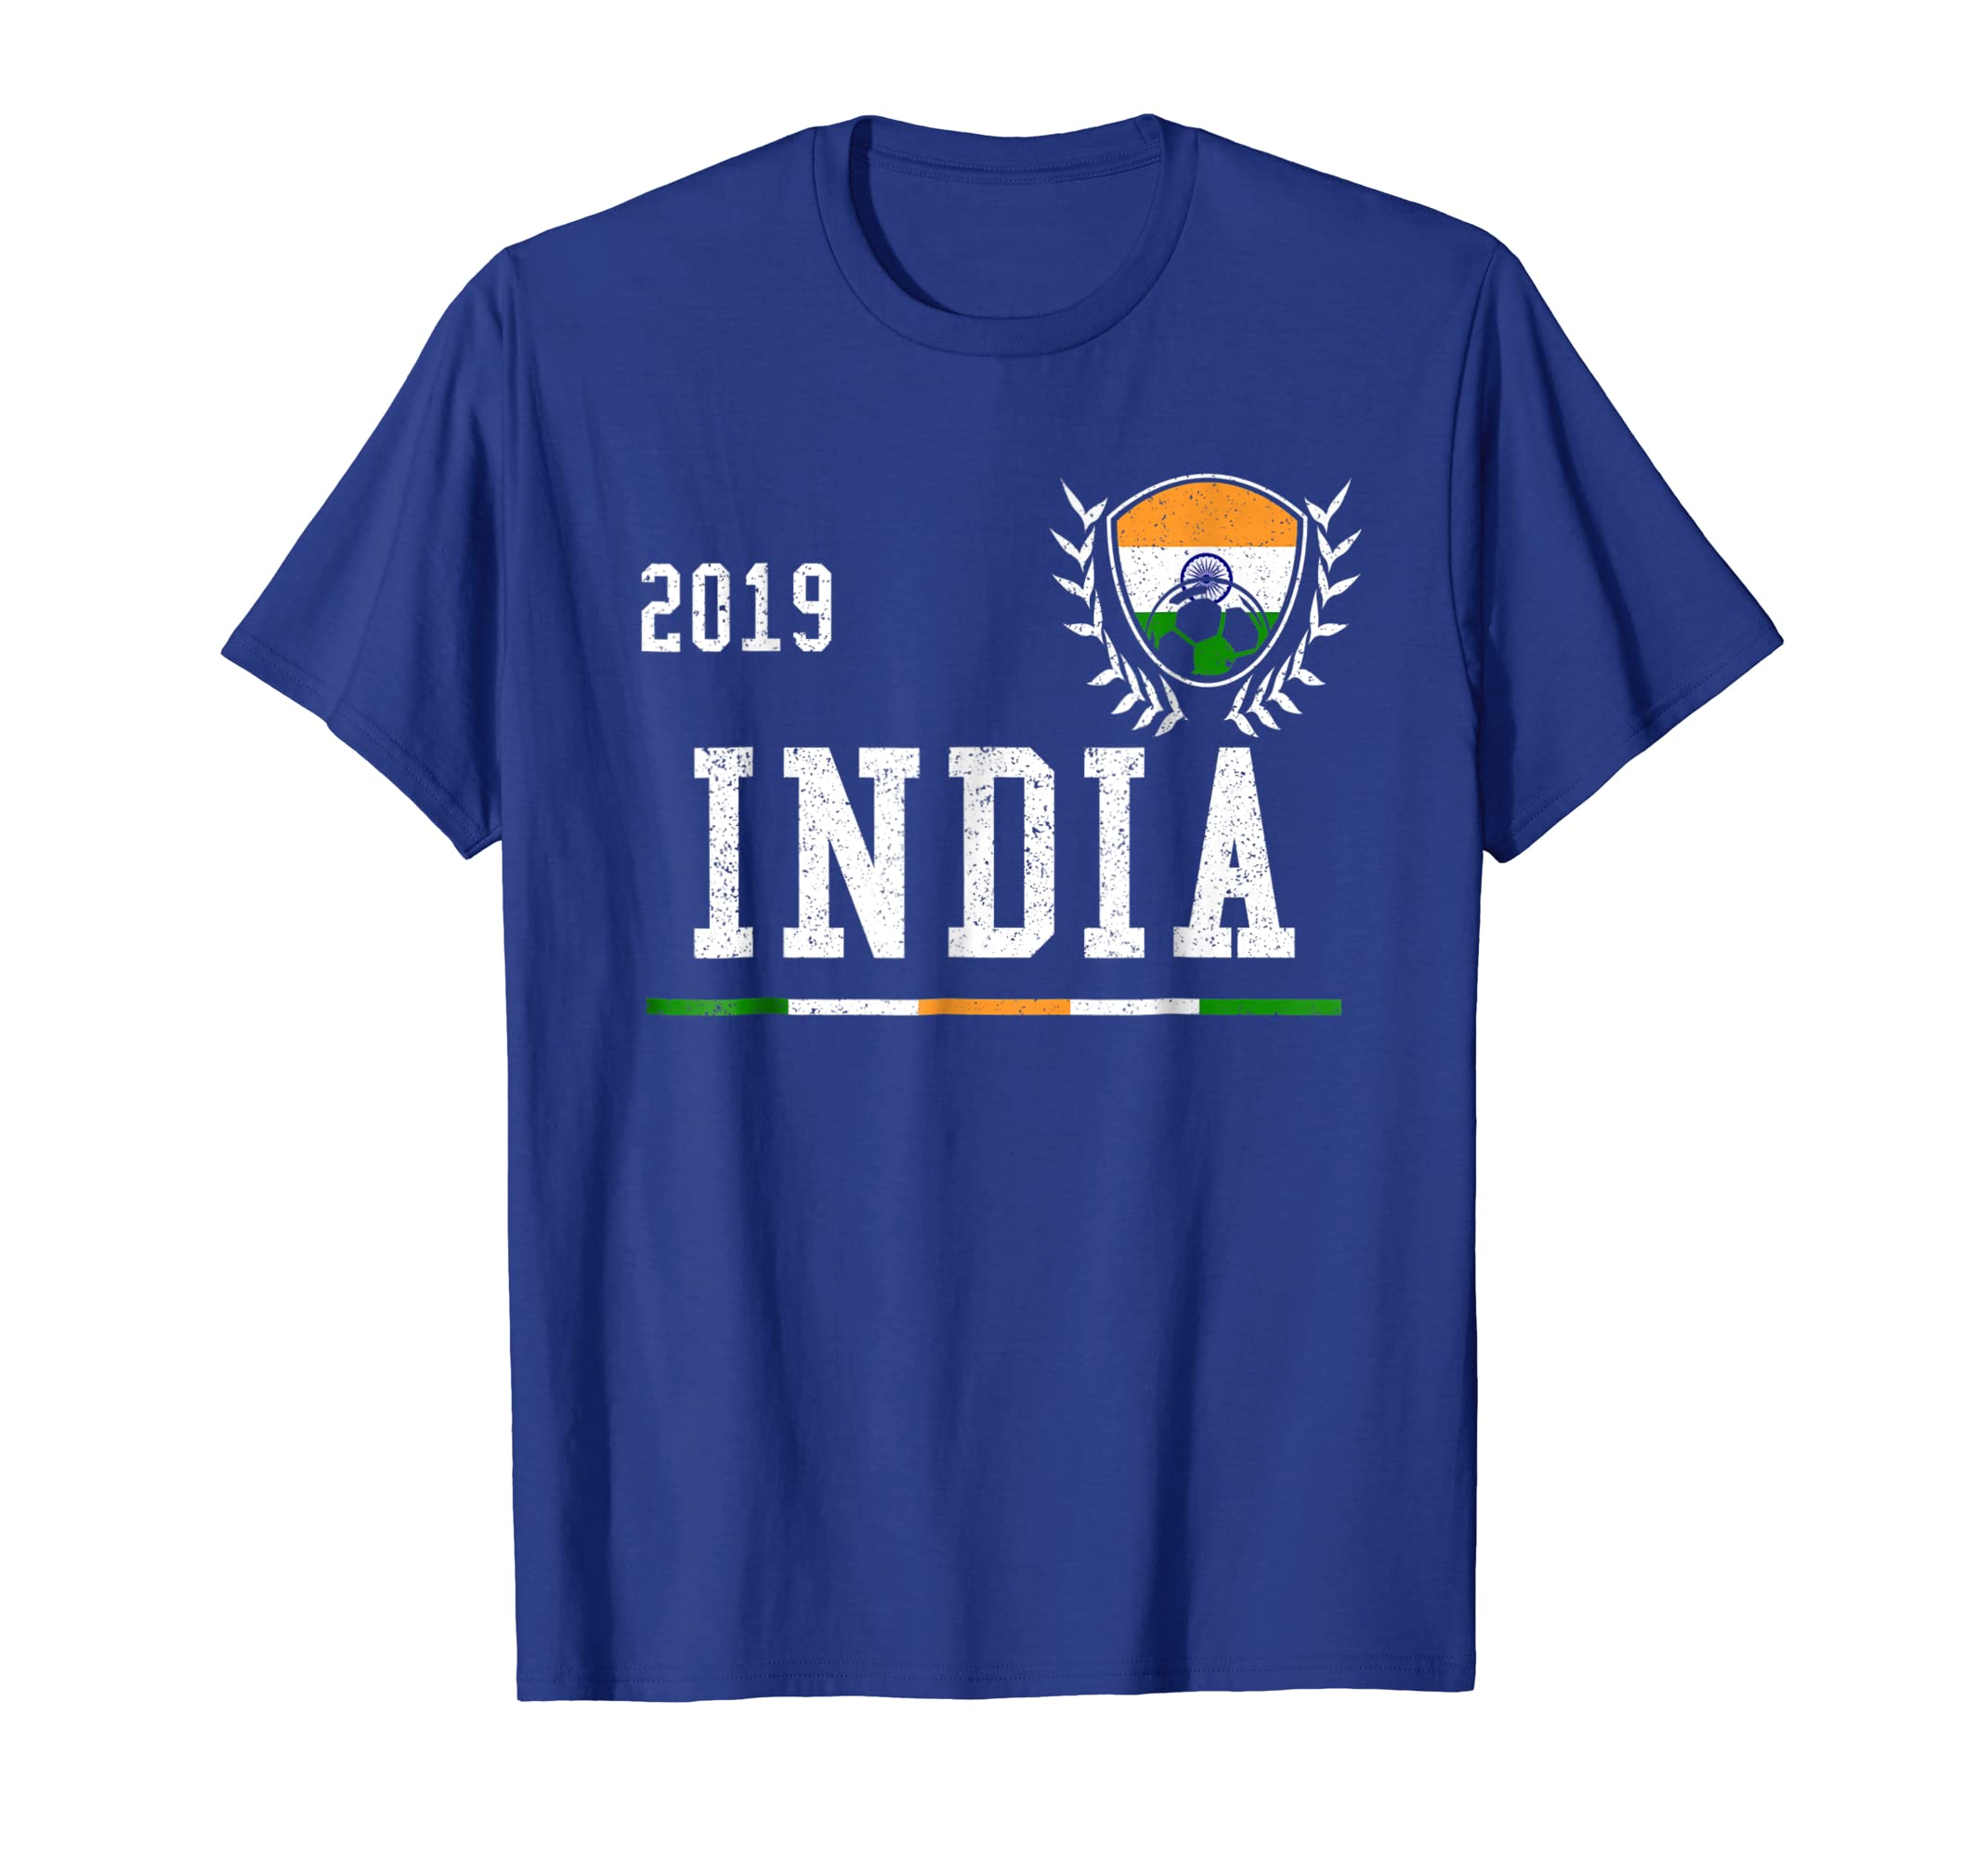 finest selection dae98 8d588 Amazon.com: India Football Jersey 2019 Indian Soccer T-shirt ...